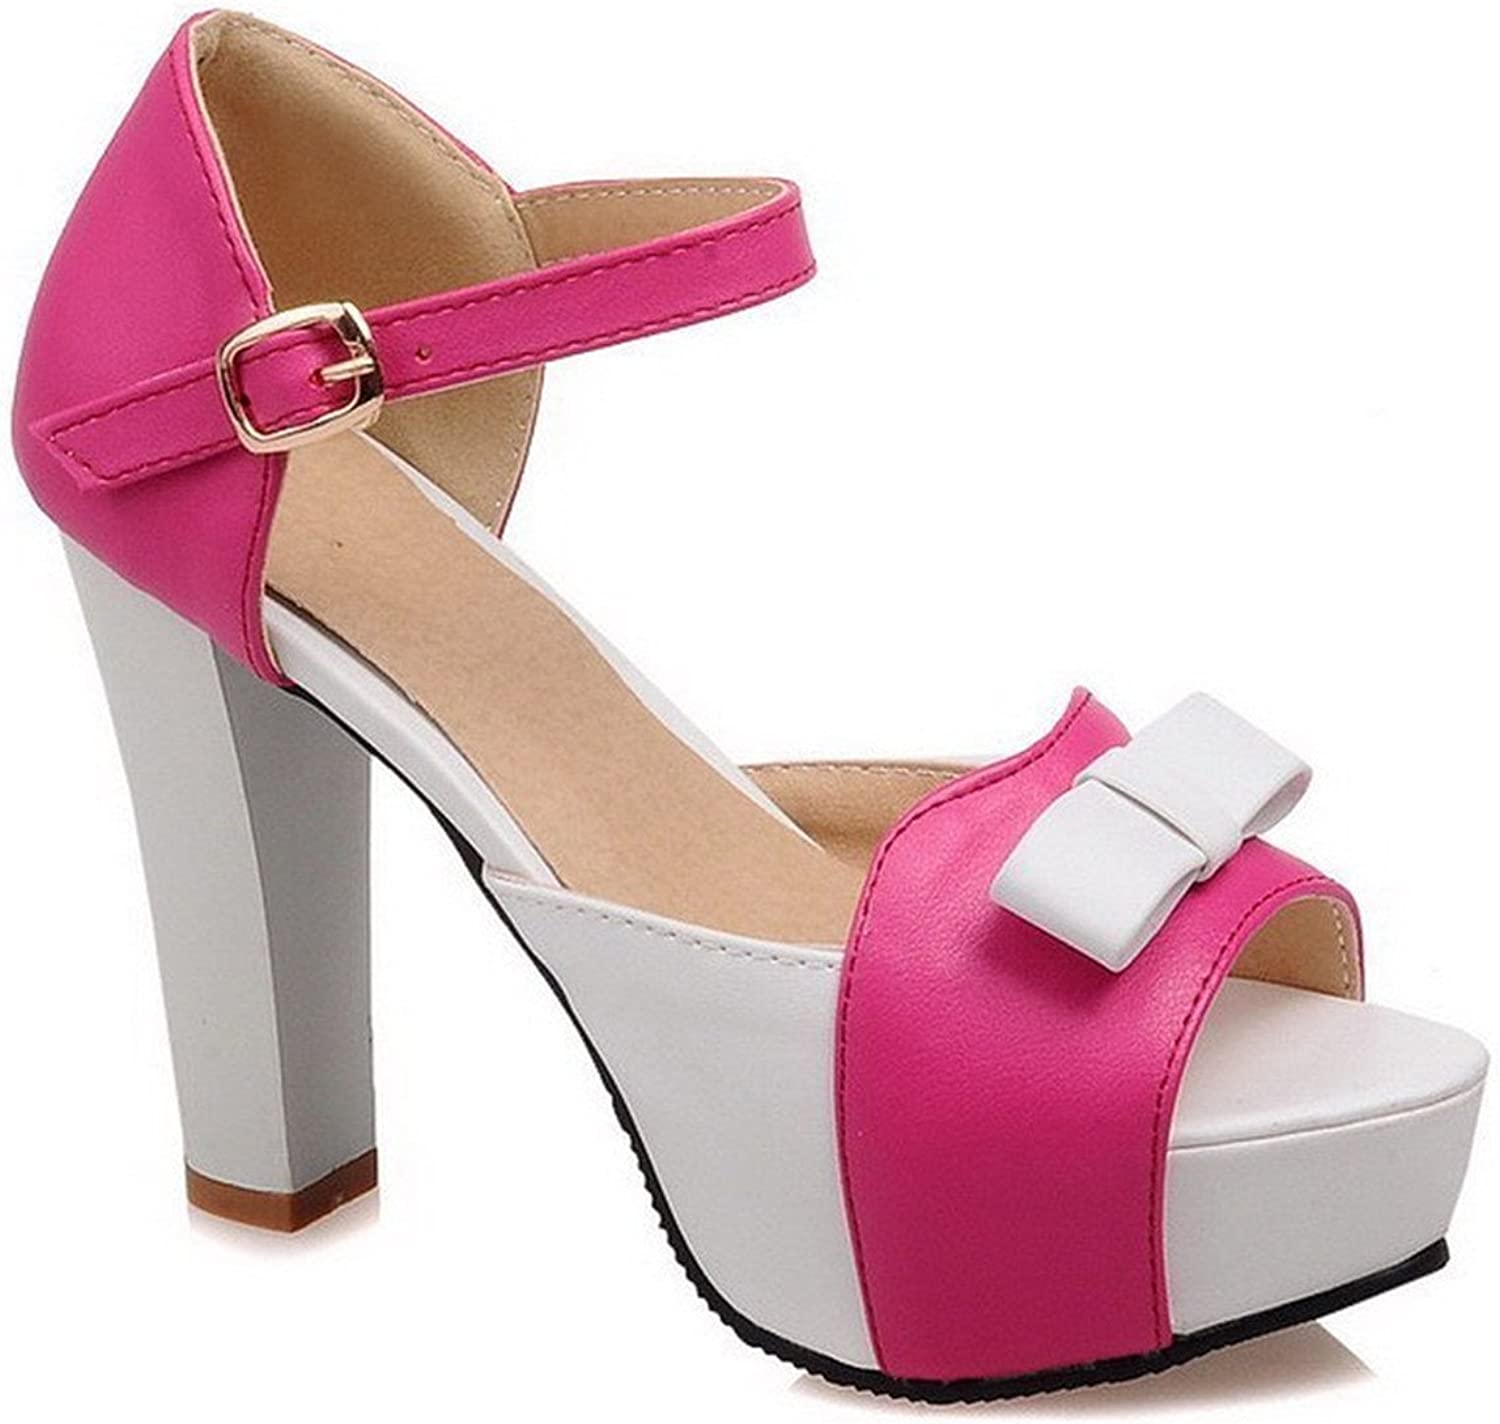 Xiaoyouny Fashionable Women's High Heels Assorted color Buckle Peep Toe Sandals